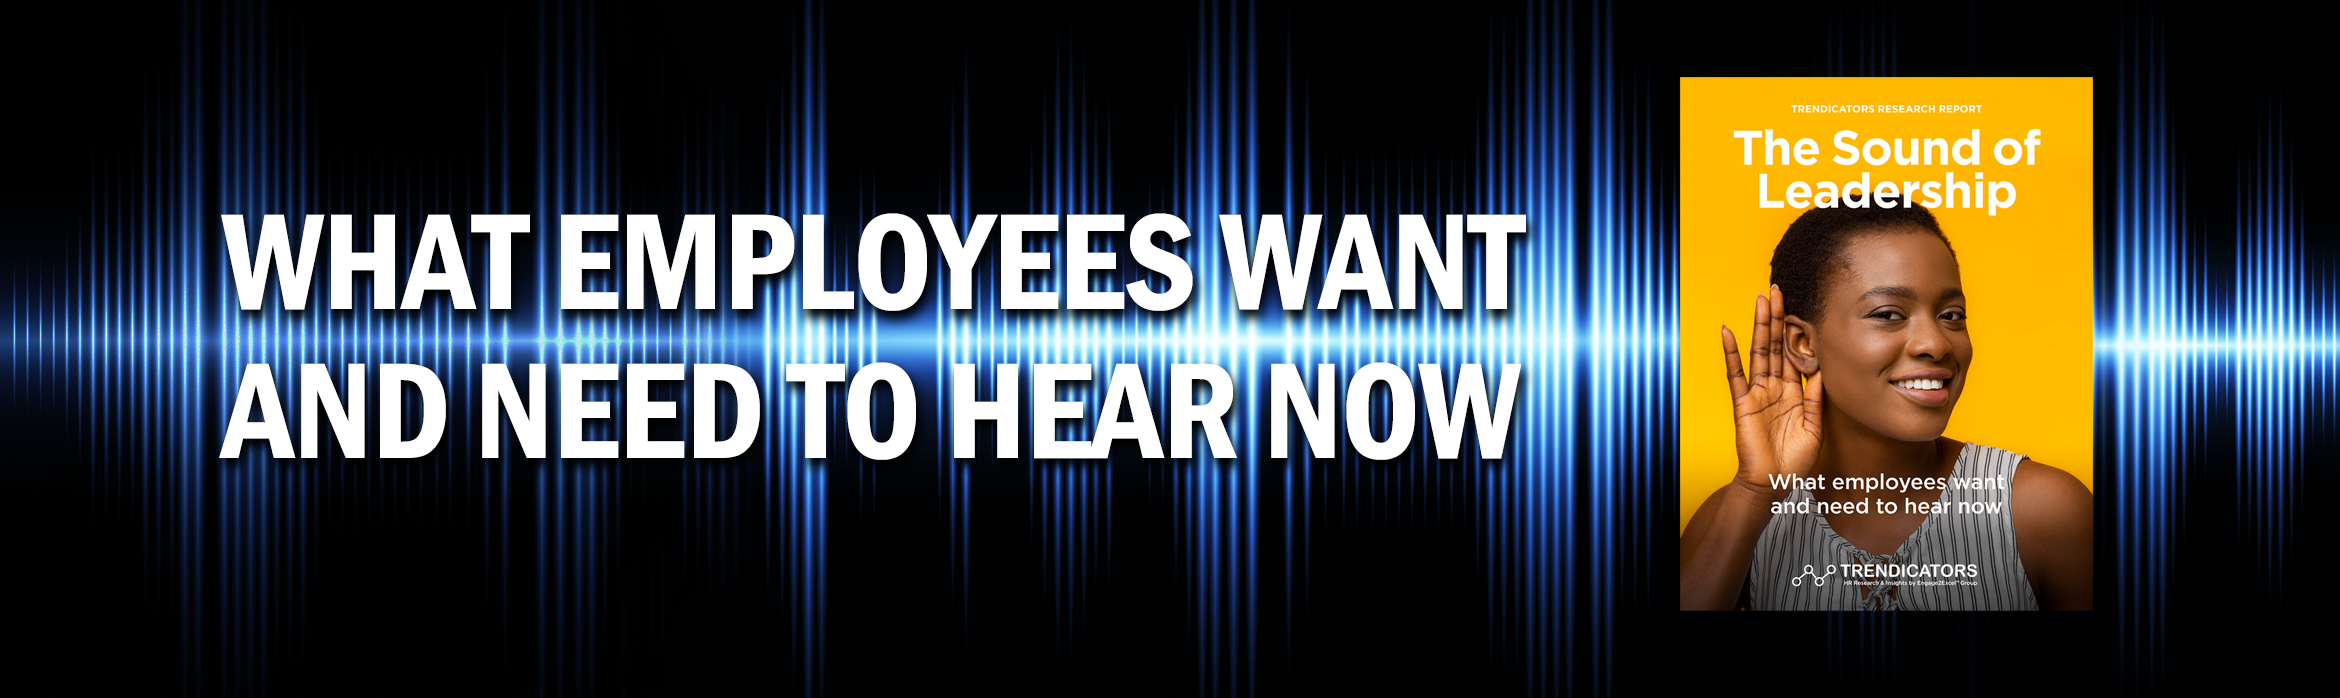 What Employees Want and Need to Hear Now